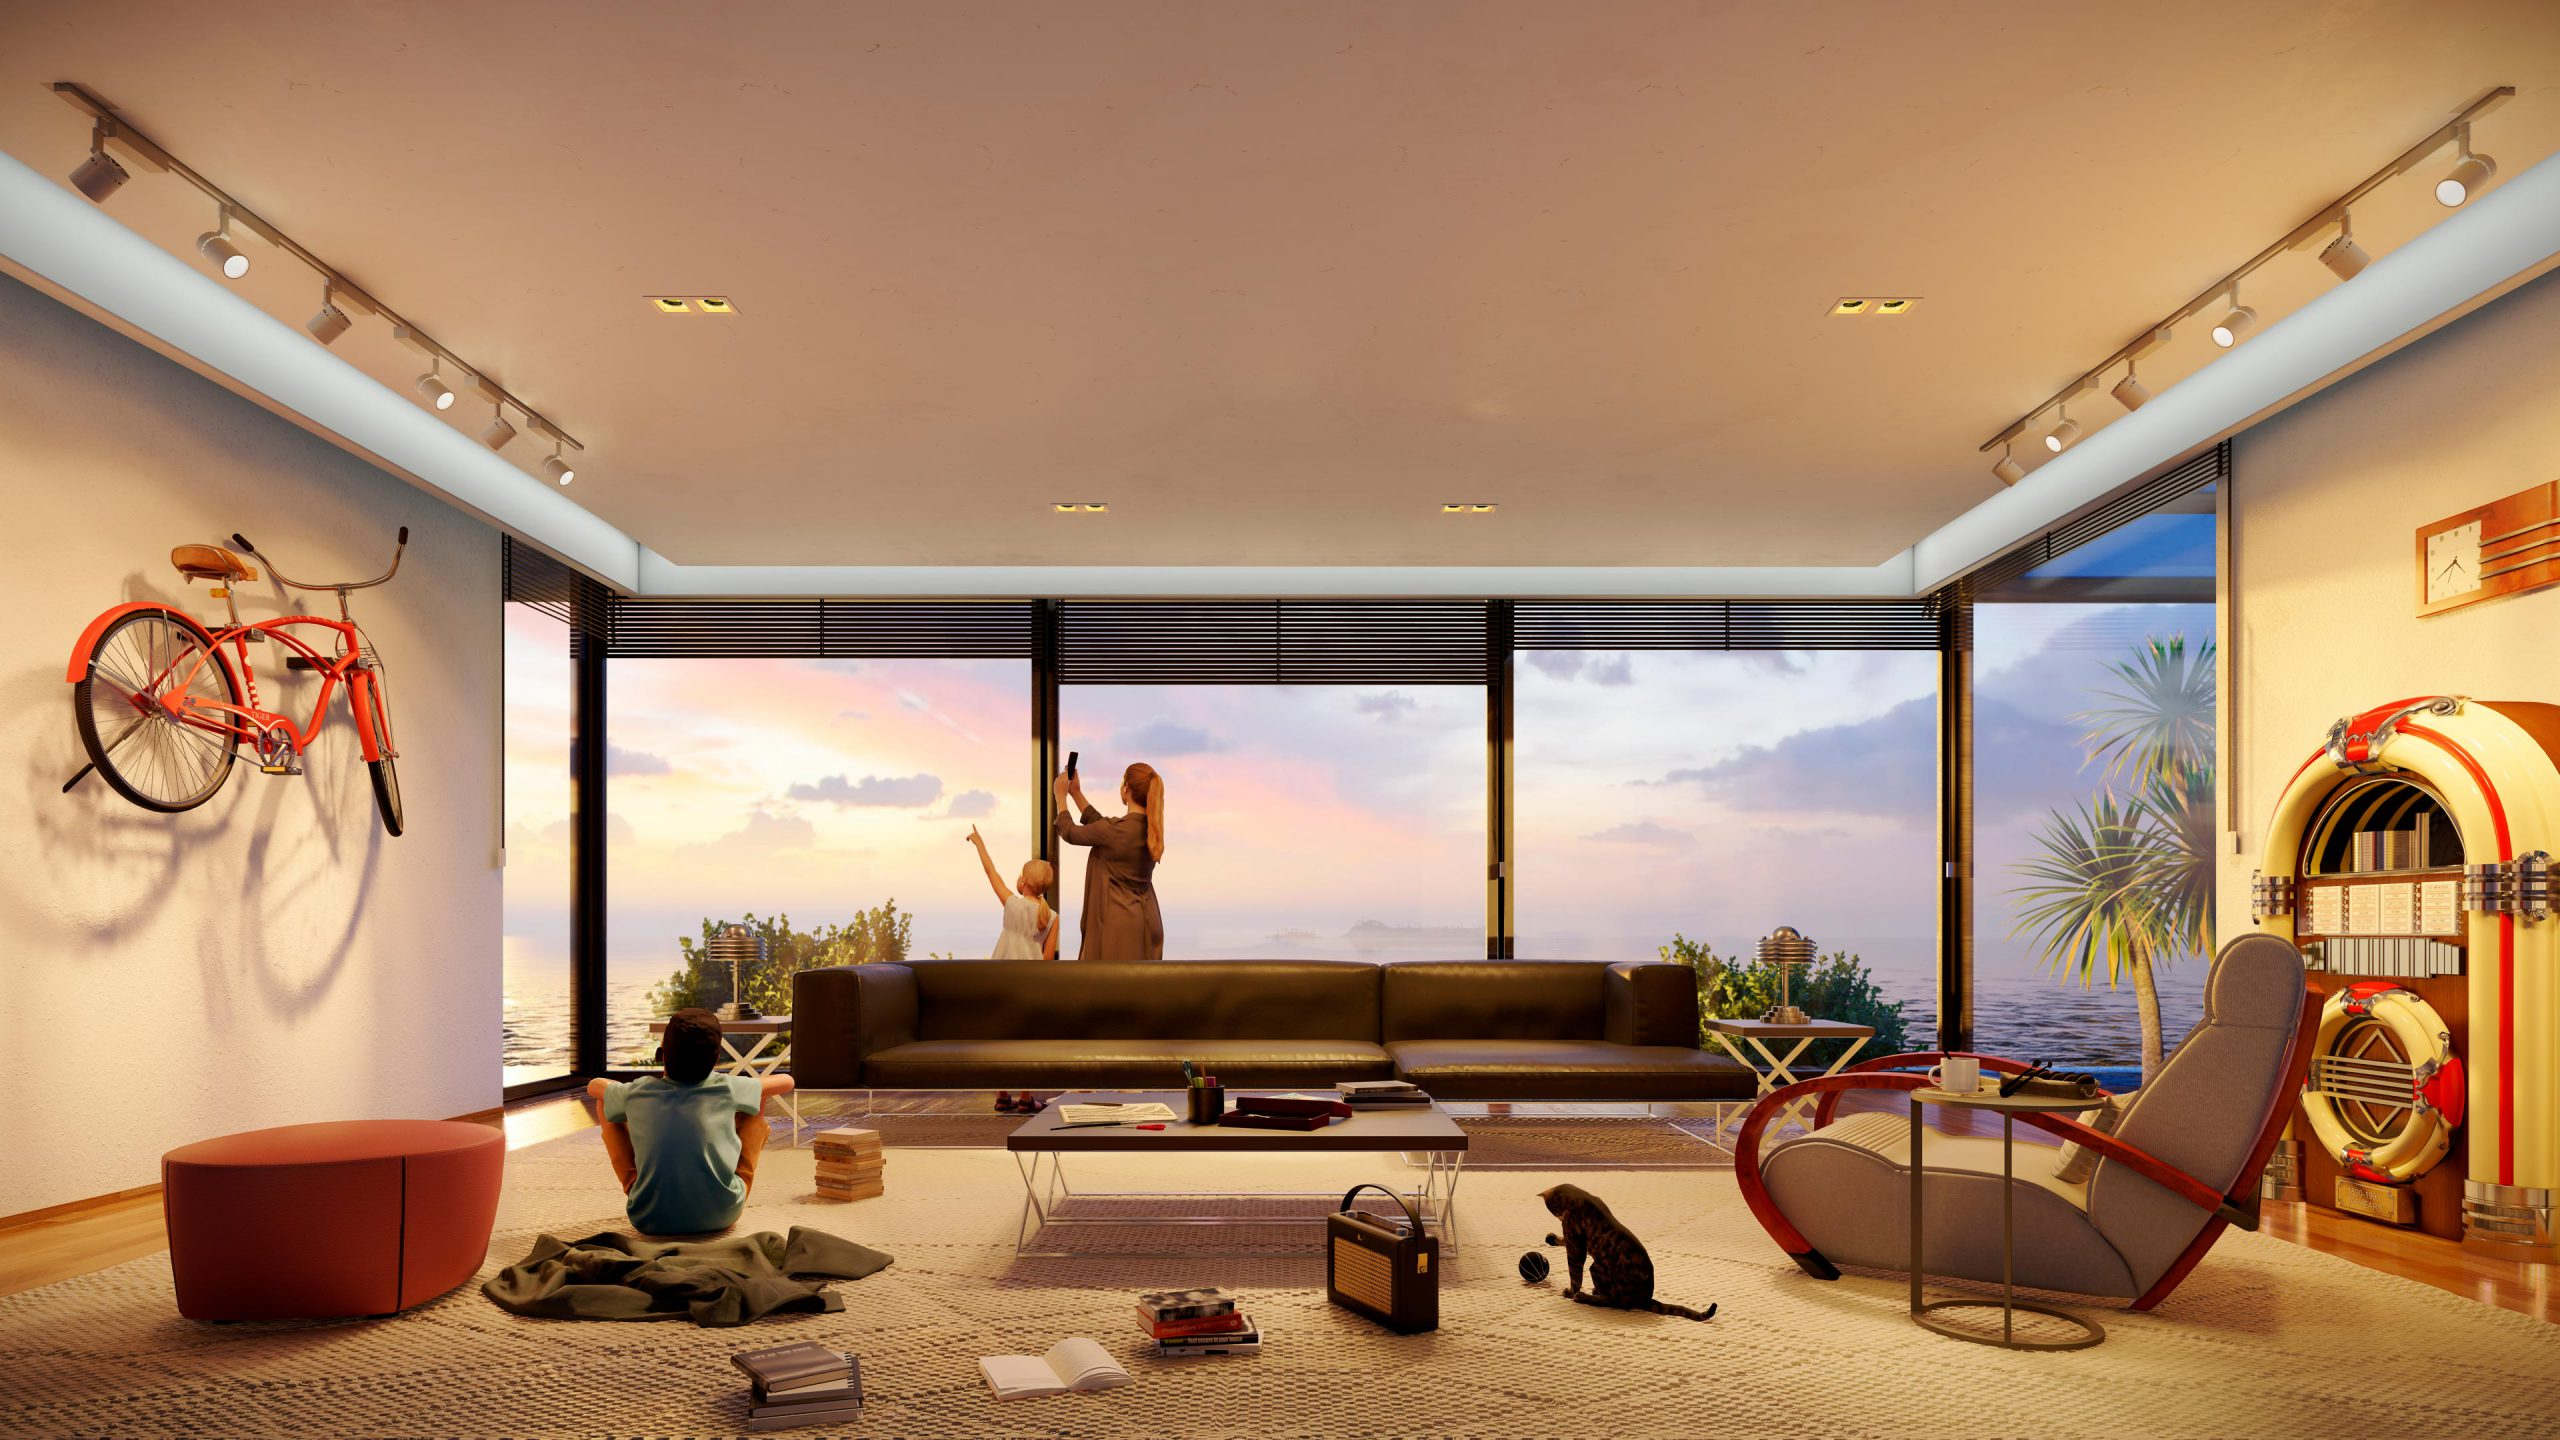 Living room at sunset. Residential home interior showing the new objects and new characters in Lumion 11.5